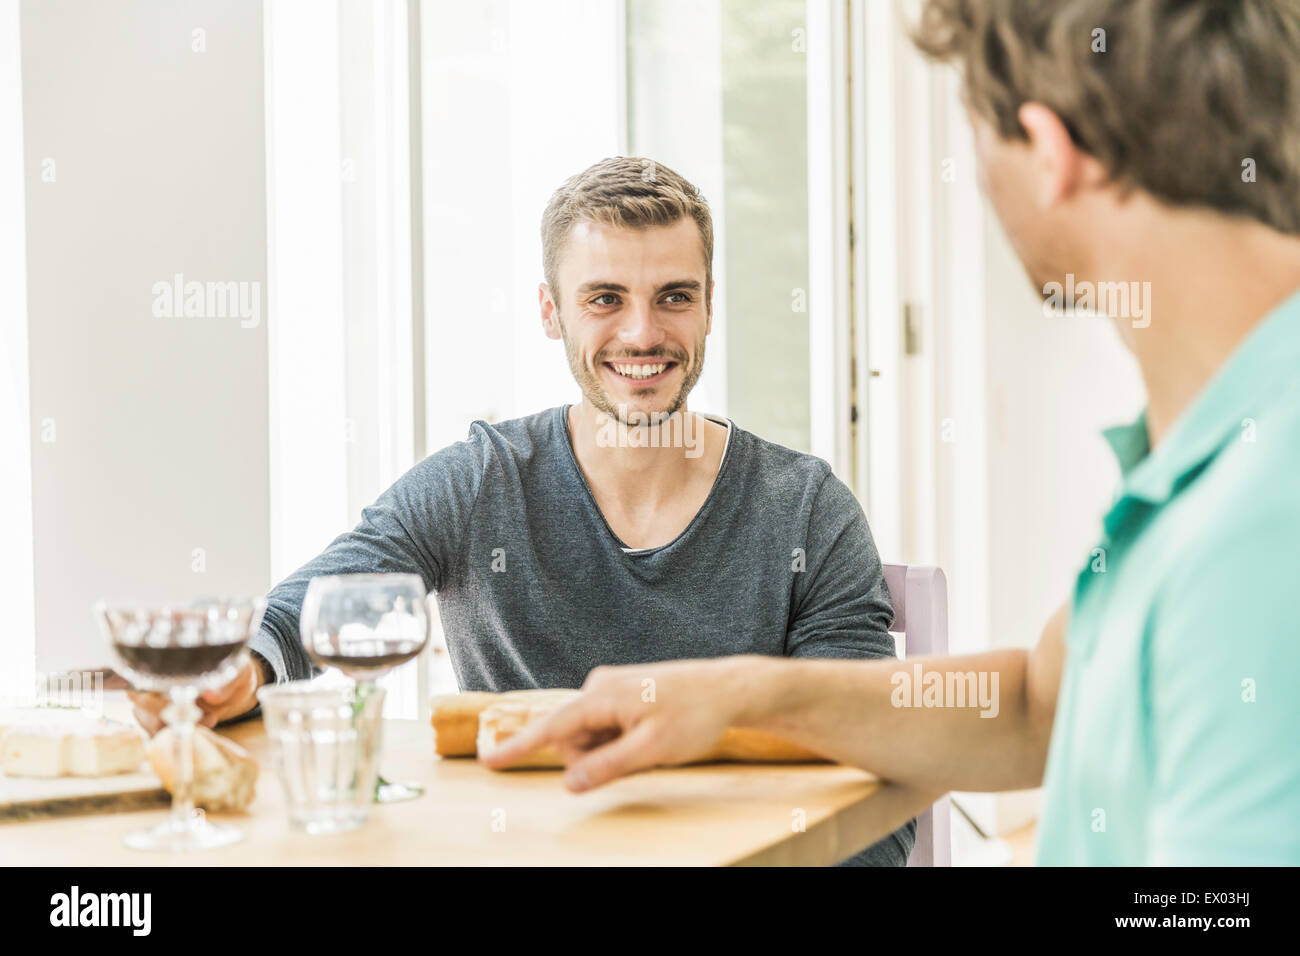 Two young men chatting at table at party in dining room - Stock Image